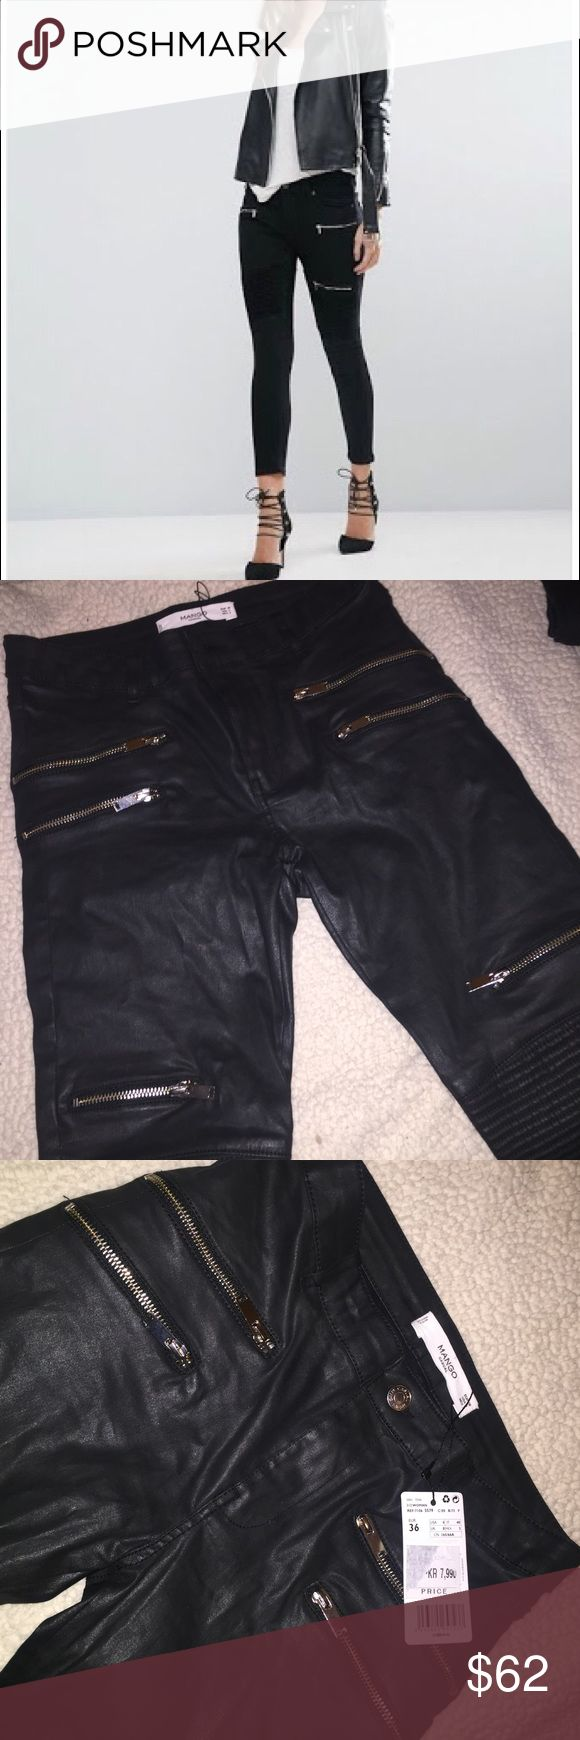 Mango zipper leather jeans Never worn with tags attached. Size EUR 36 and US 4. I'm unsure of the material but it's feels like a mix between denim and leather. Has a leather look to it. Mango Jeans Skinny